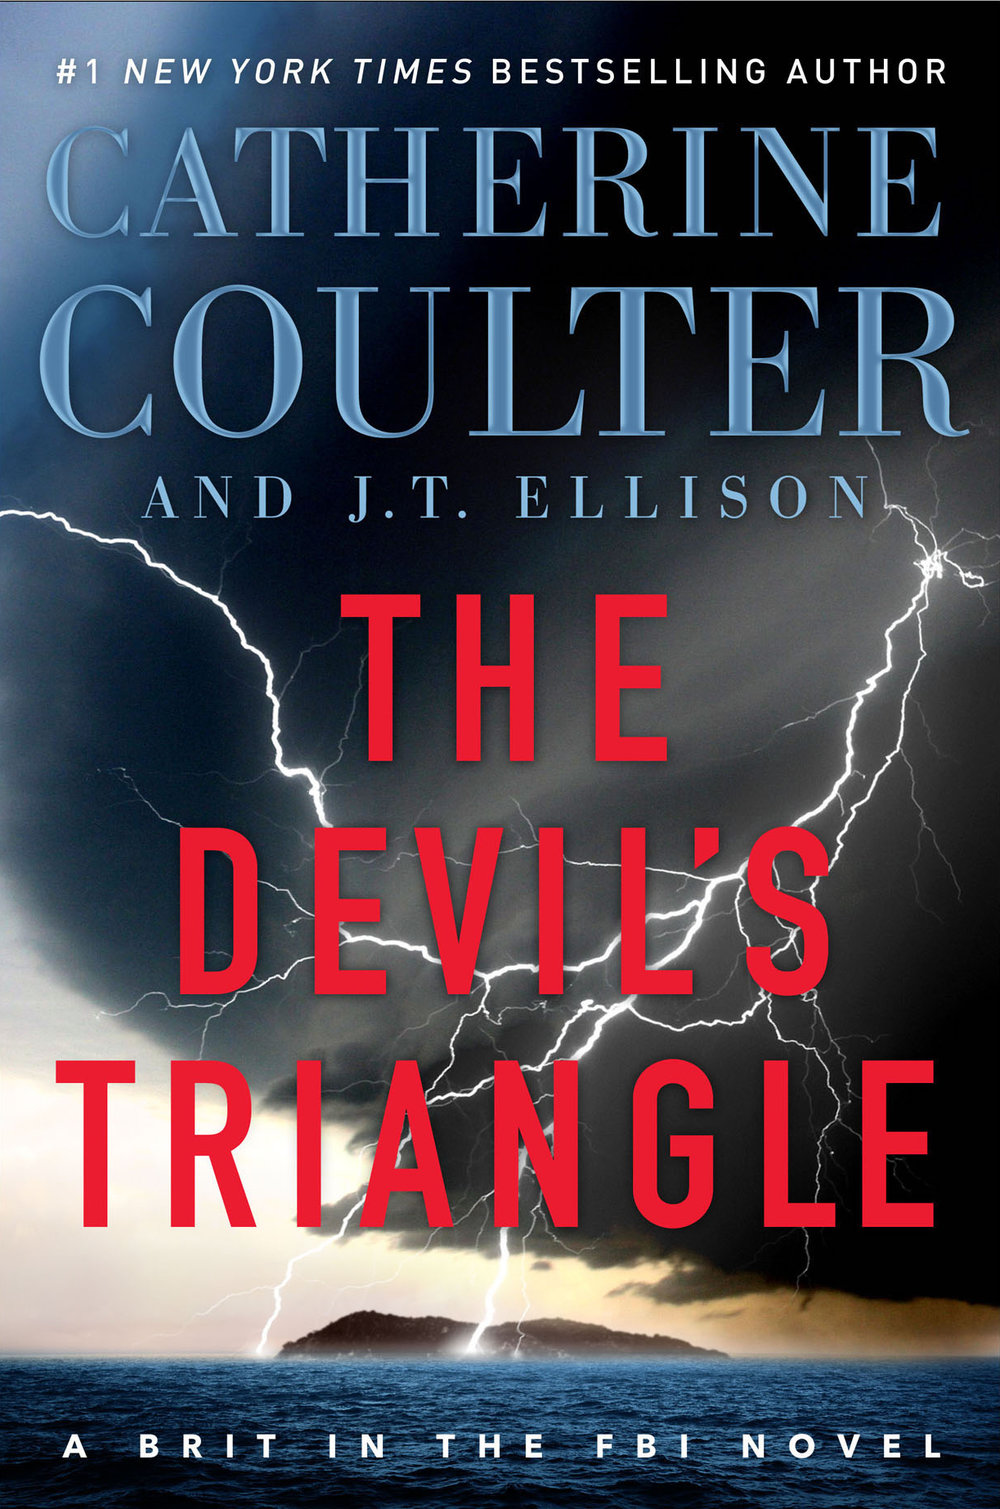 THE DEVIL'S TRIANGLE by J.T. Ellison